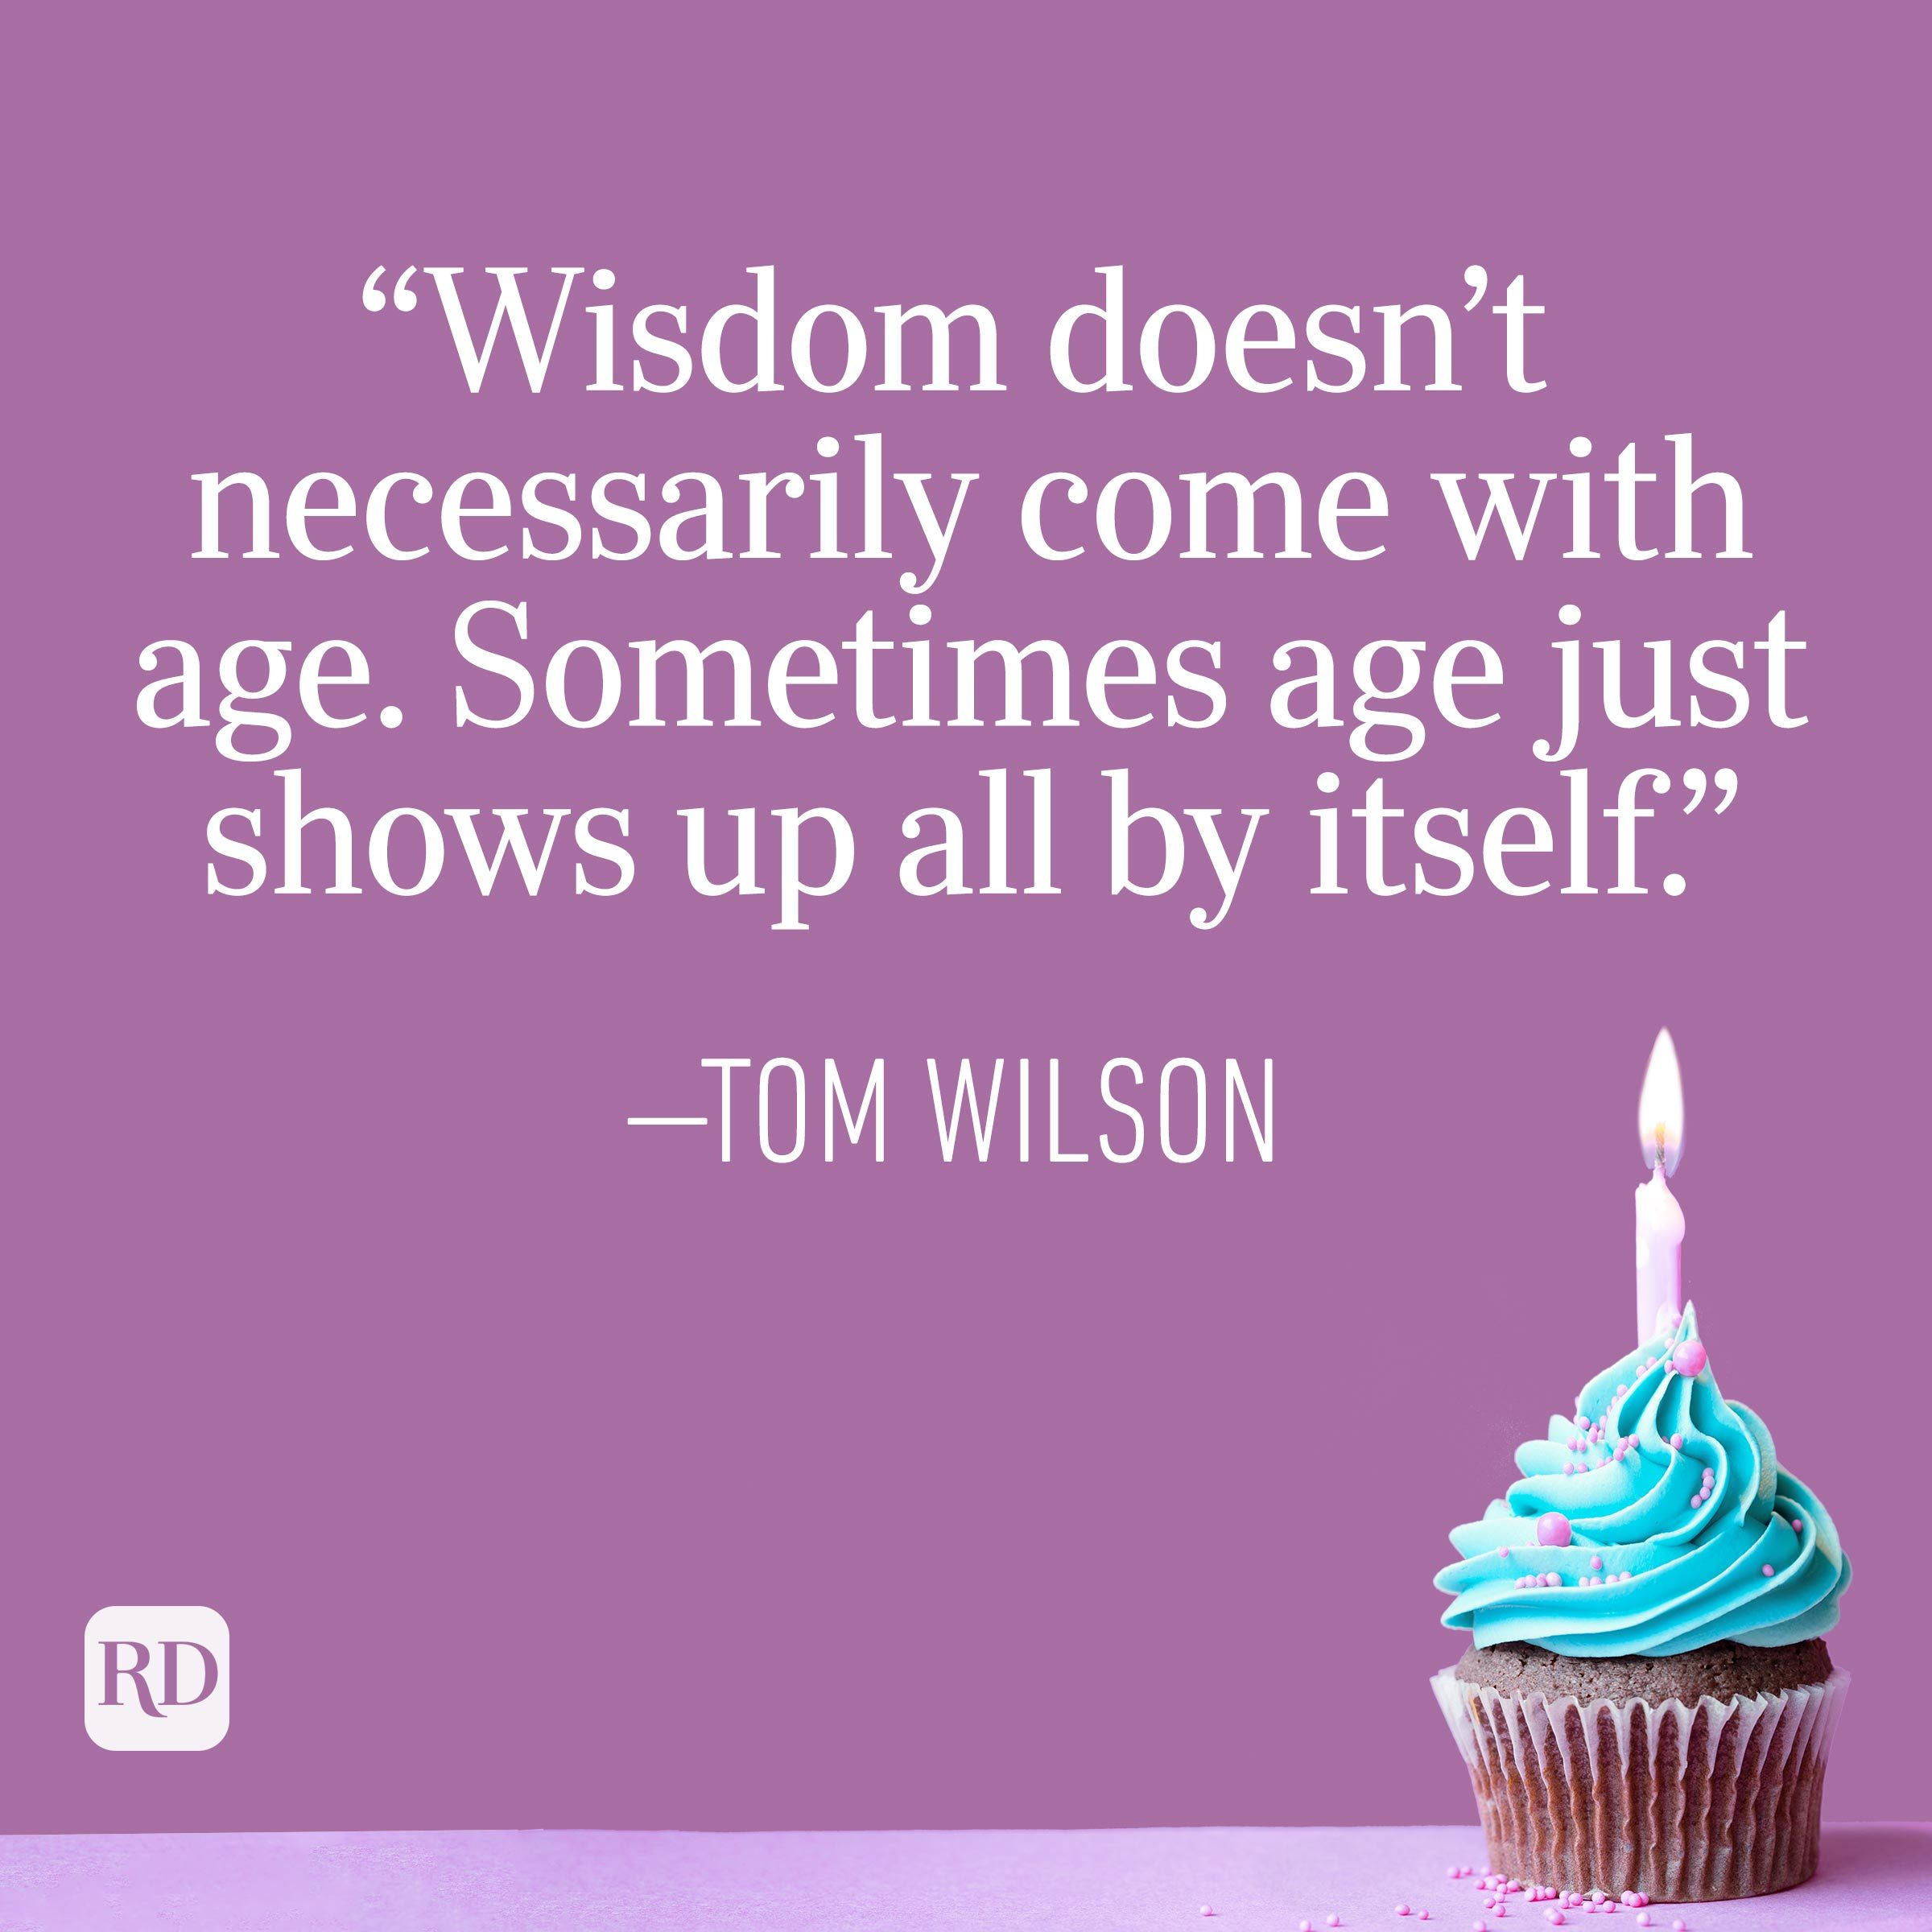 """""""Wisdom doesn't necessarily come with age. Sometimes age just shows up all by itself."""" —Tom Wilson"""